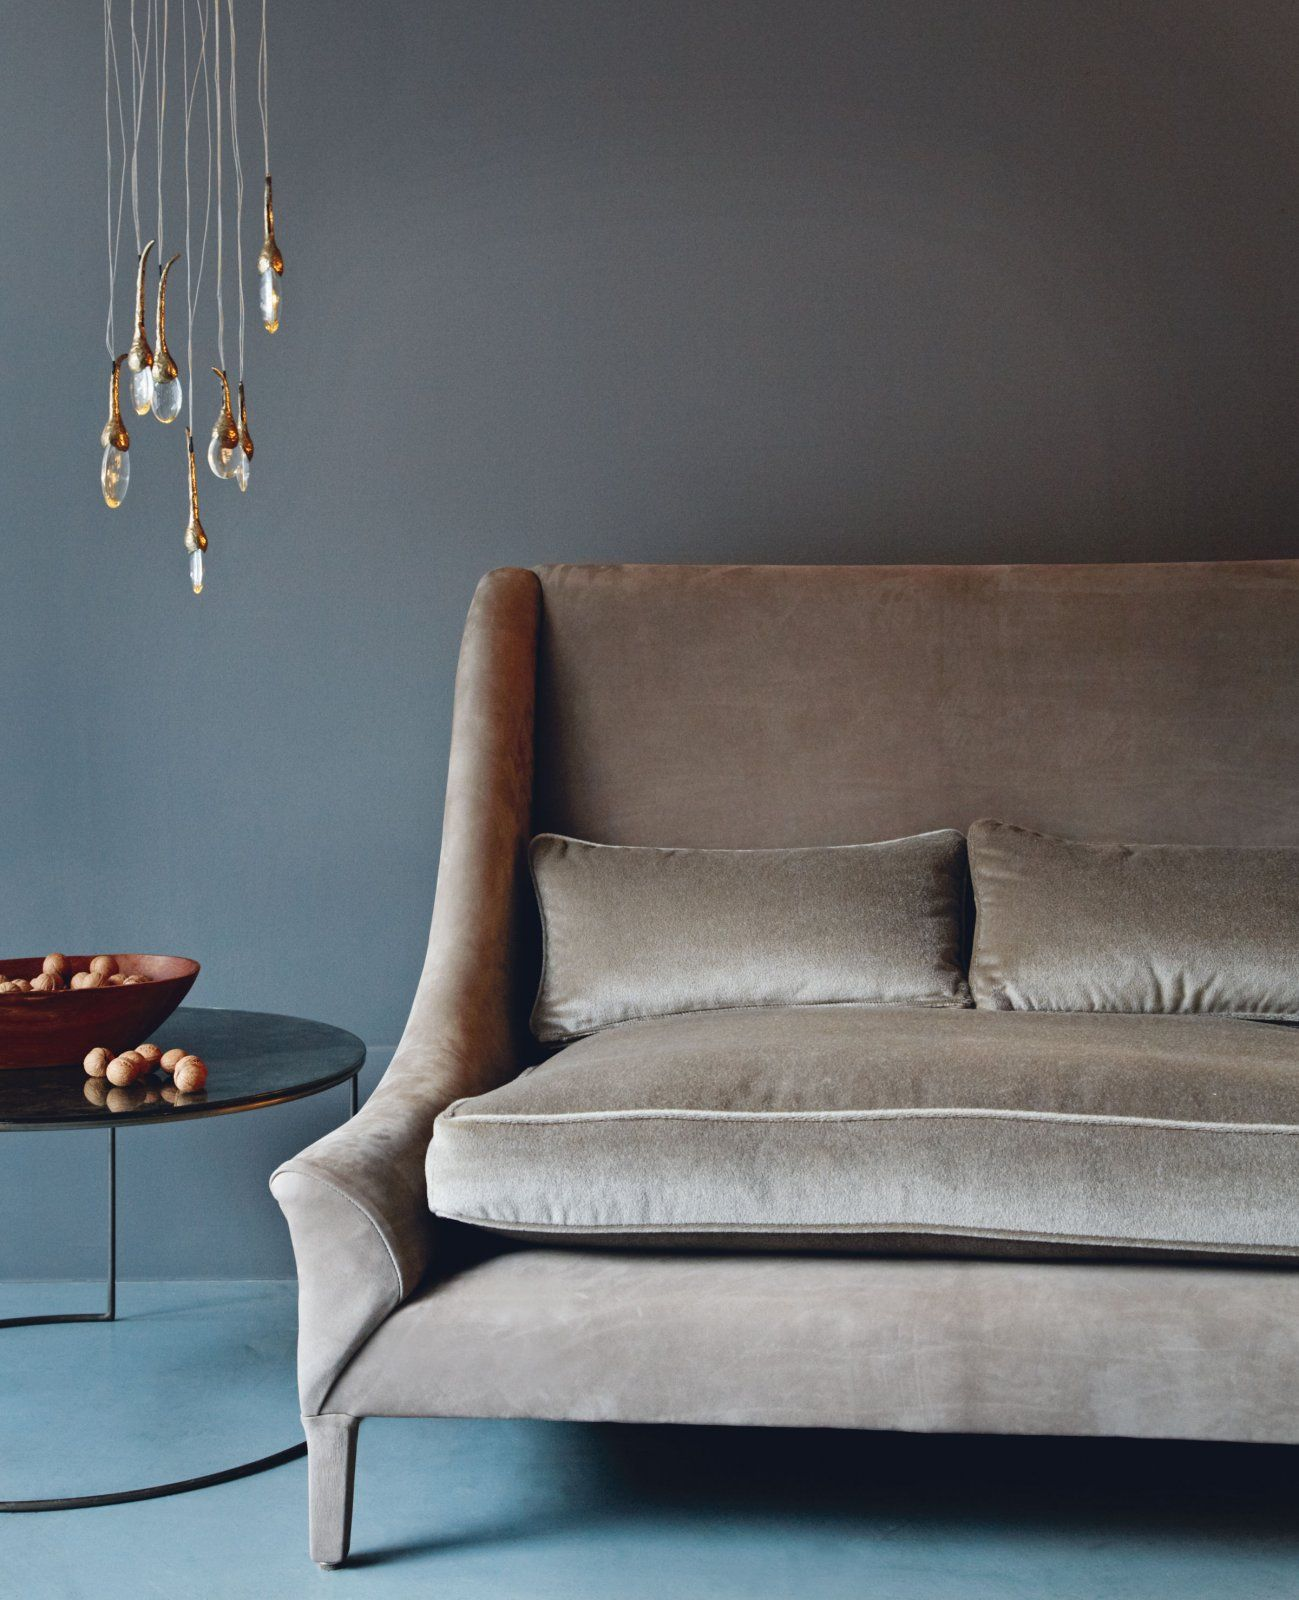 OCHRE   Contemporary Furniture, Lighting And Accessory Design   Seed Cloud    Round 7 Buds